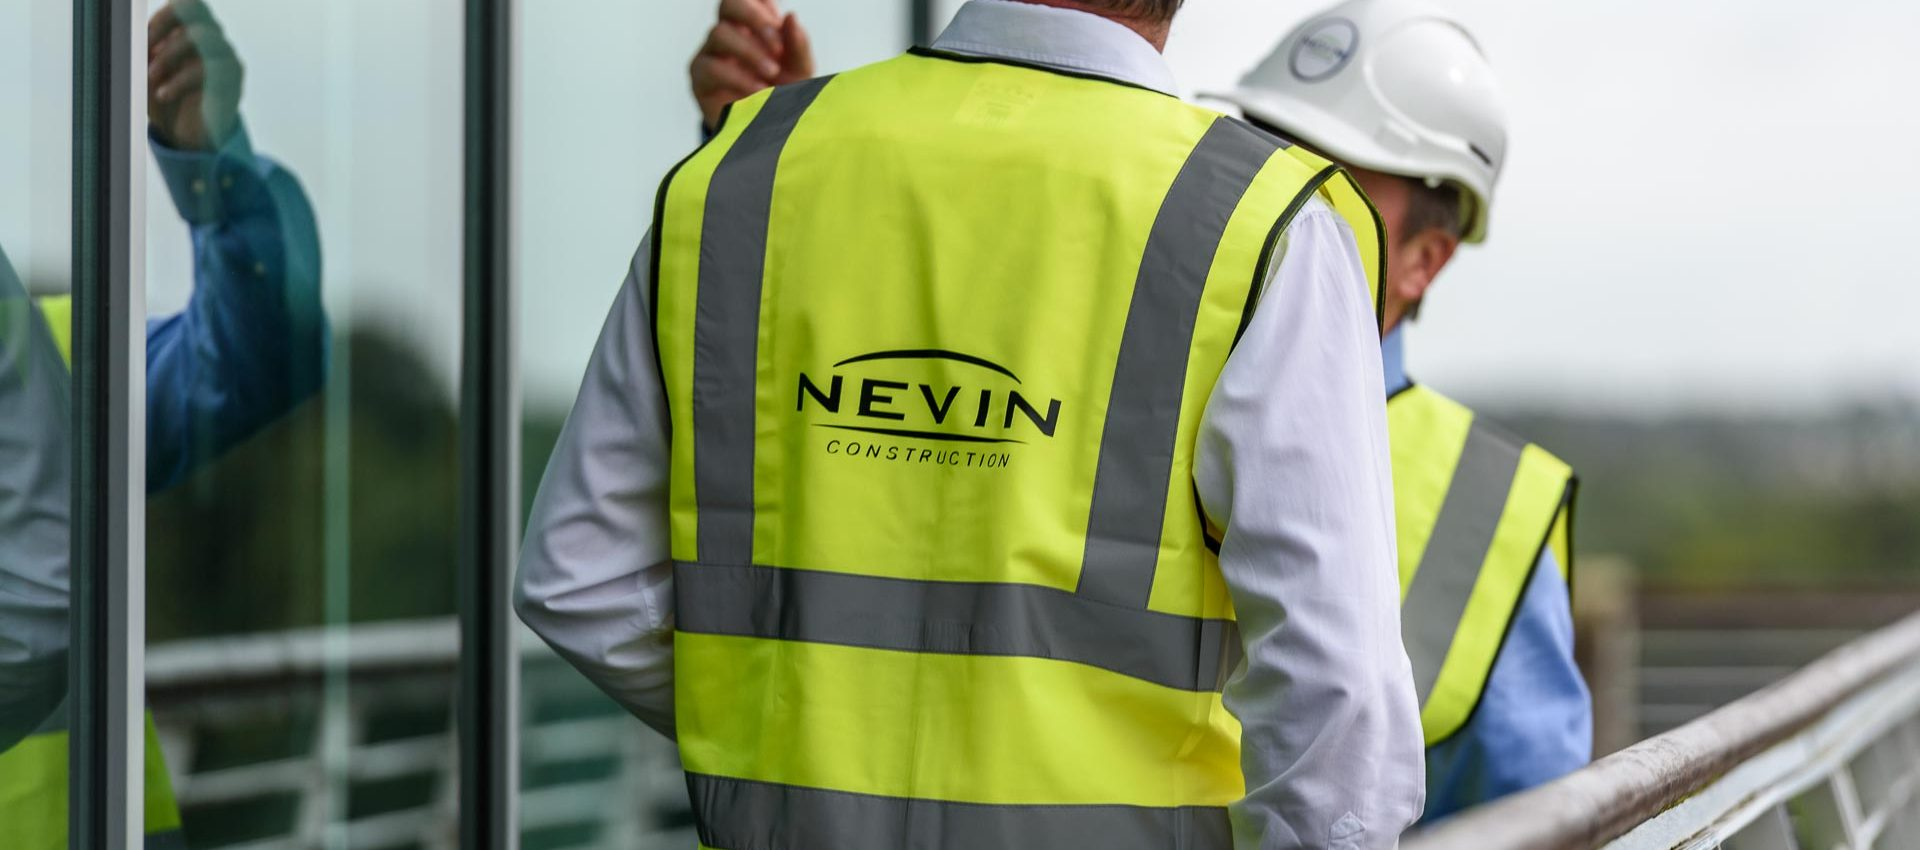 Nevin Outside Image